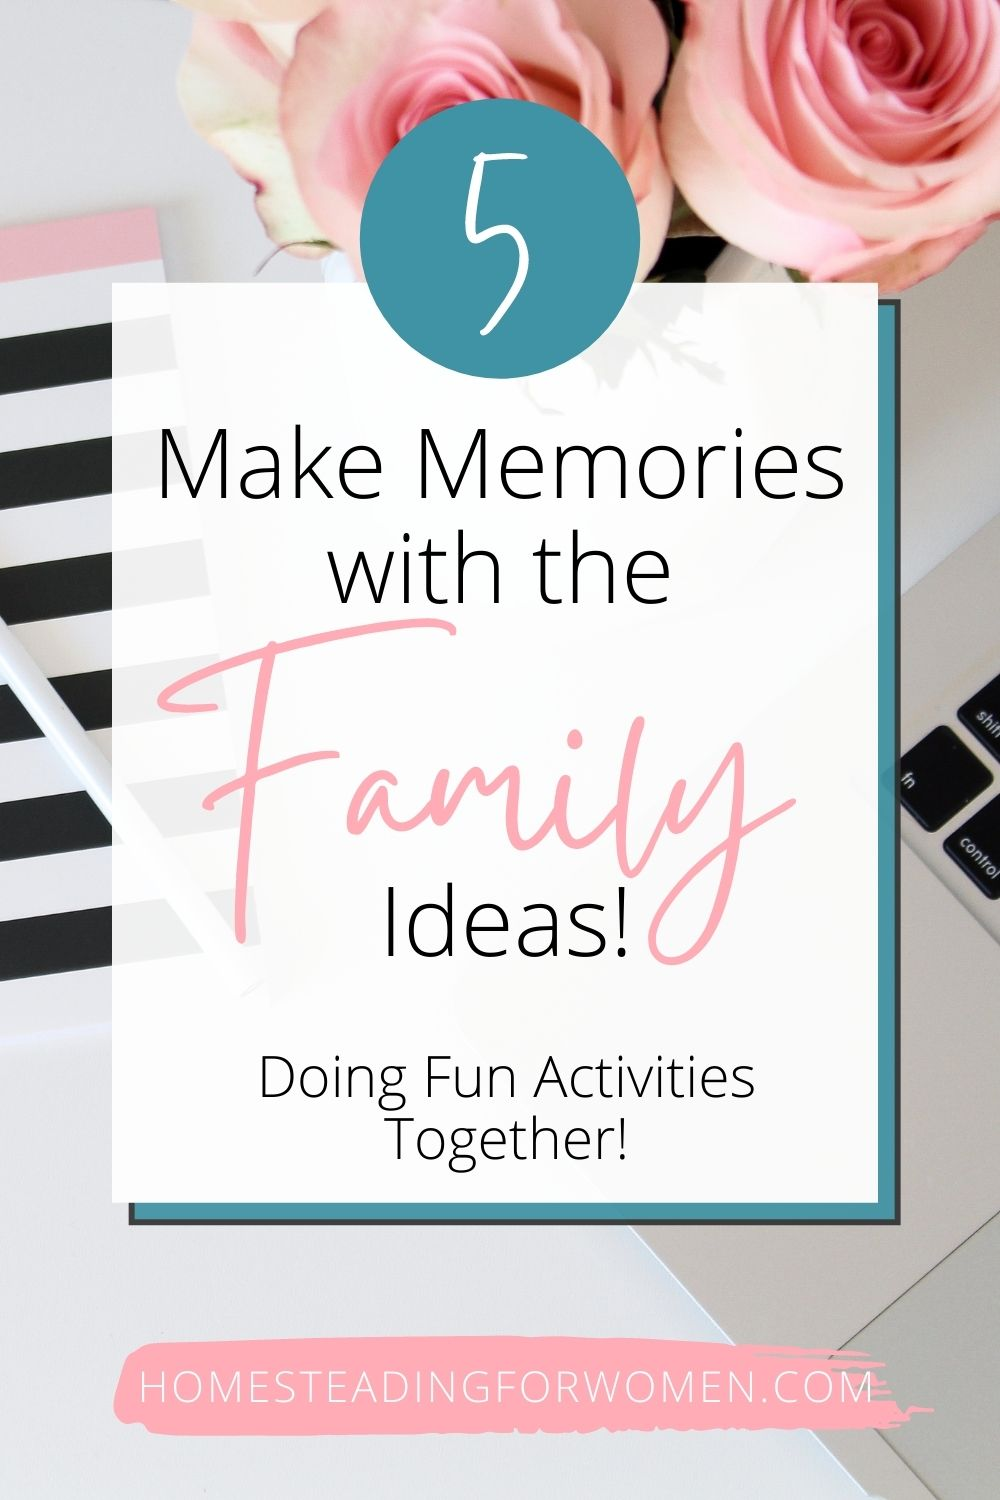 5 Make Memories With Family Ideas ~Doing Fun Activities Together!